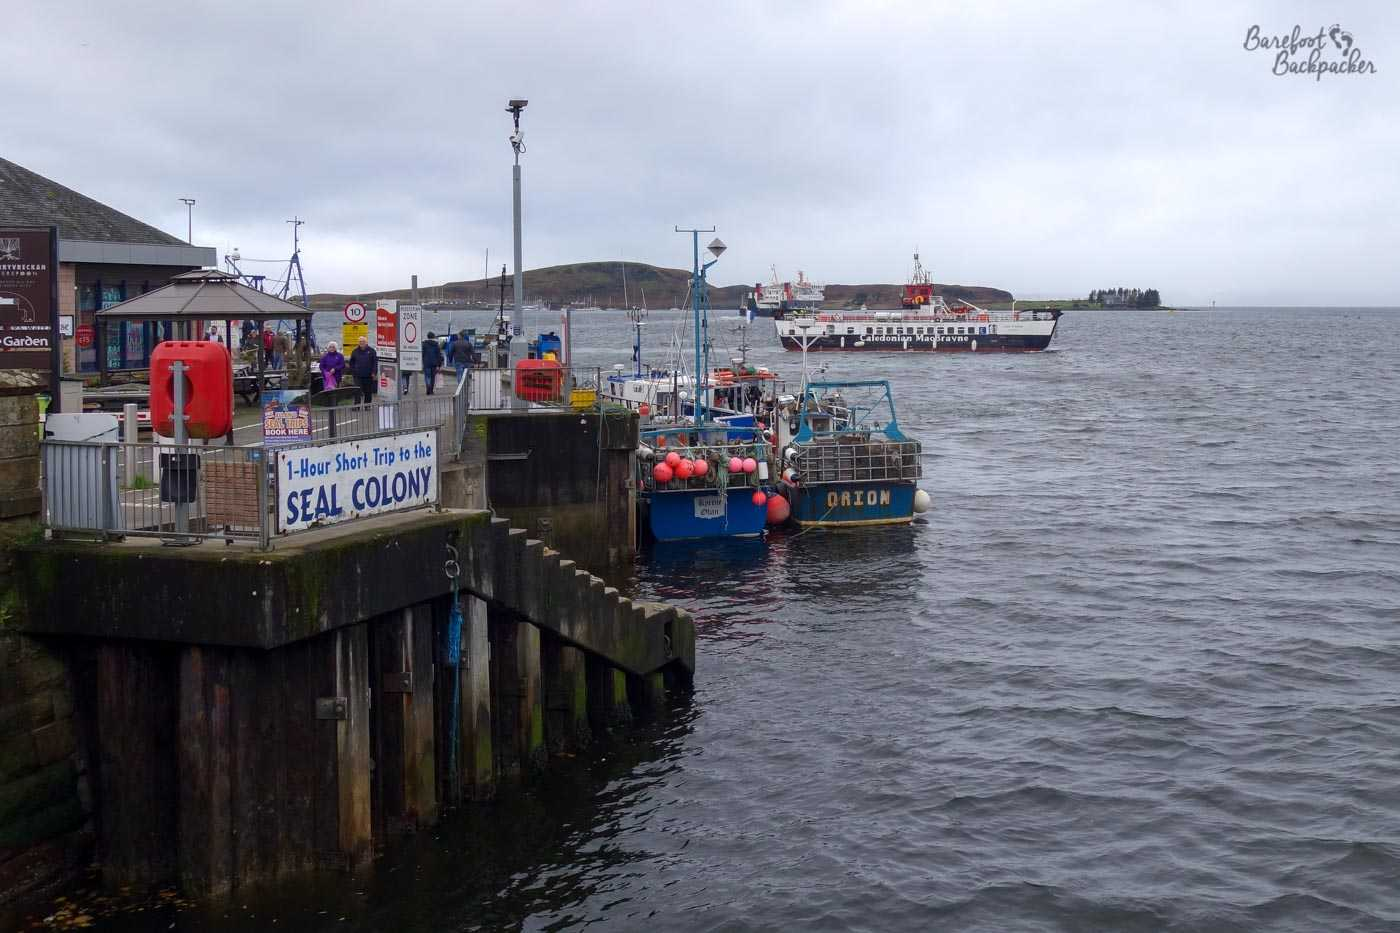 A jetty at Oban. There's a couple of boats on the water that might be going to a seal colony, as a large sign on the sea wall advertises. In the background is a ferry going to one of the Inner Hebridean islands.